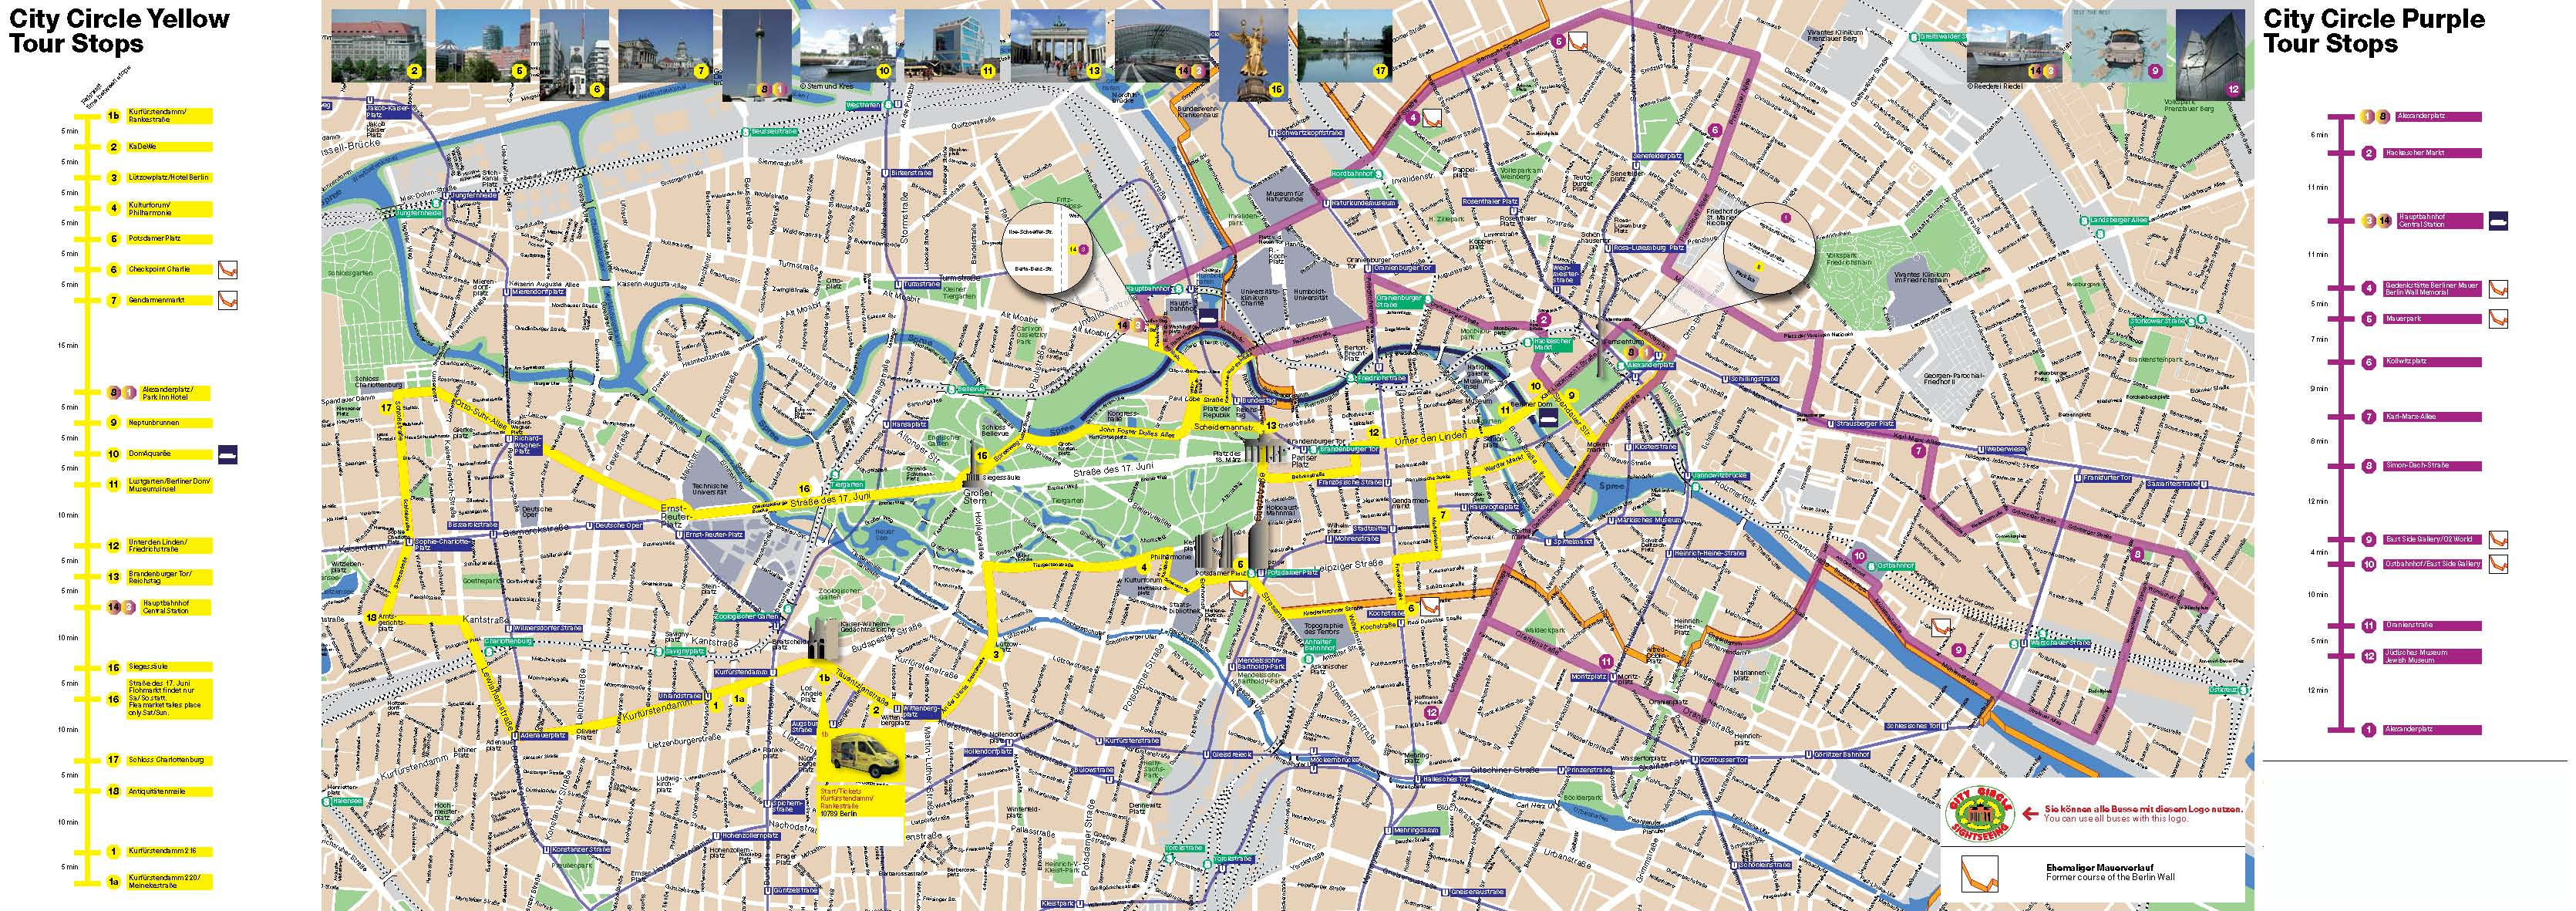 Berlin City Circle Sightseeing Bus Map